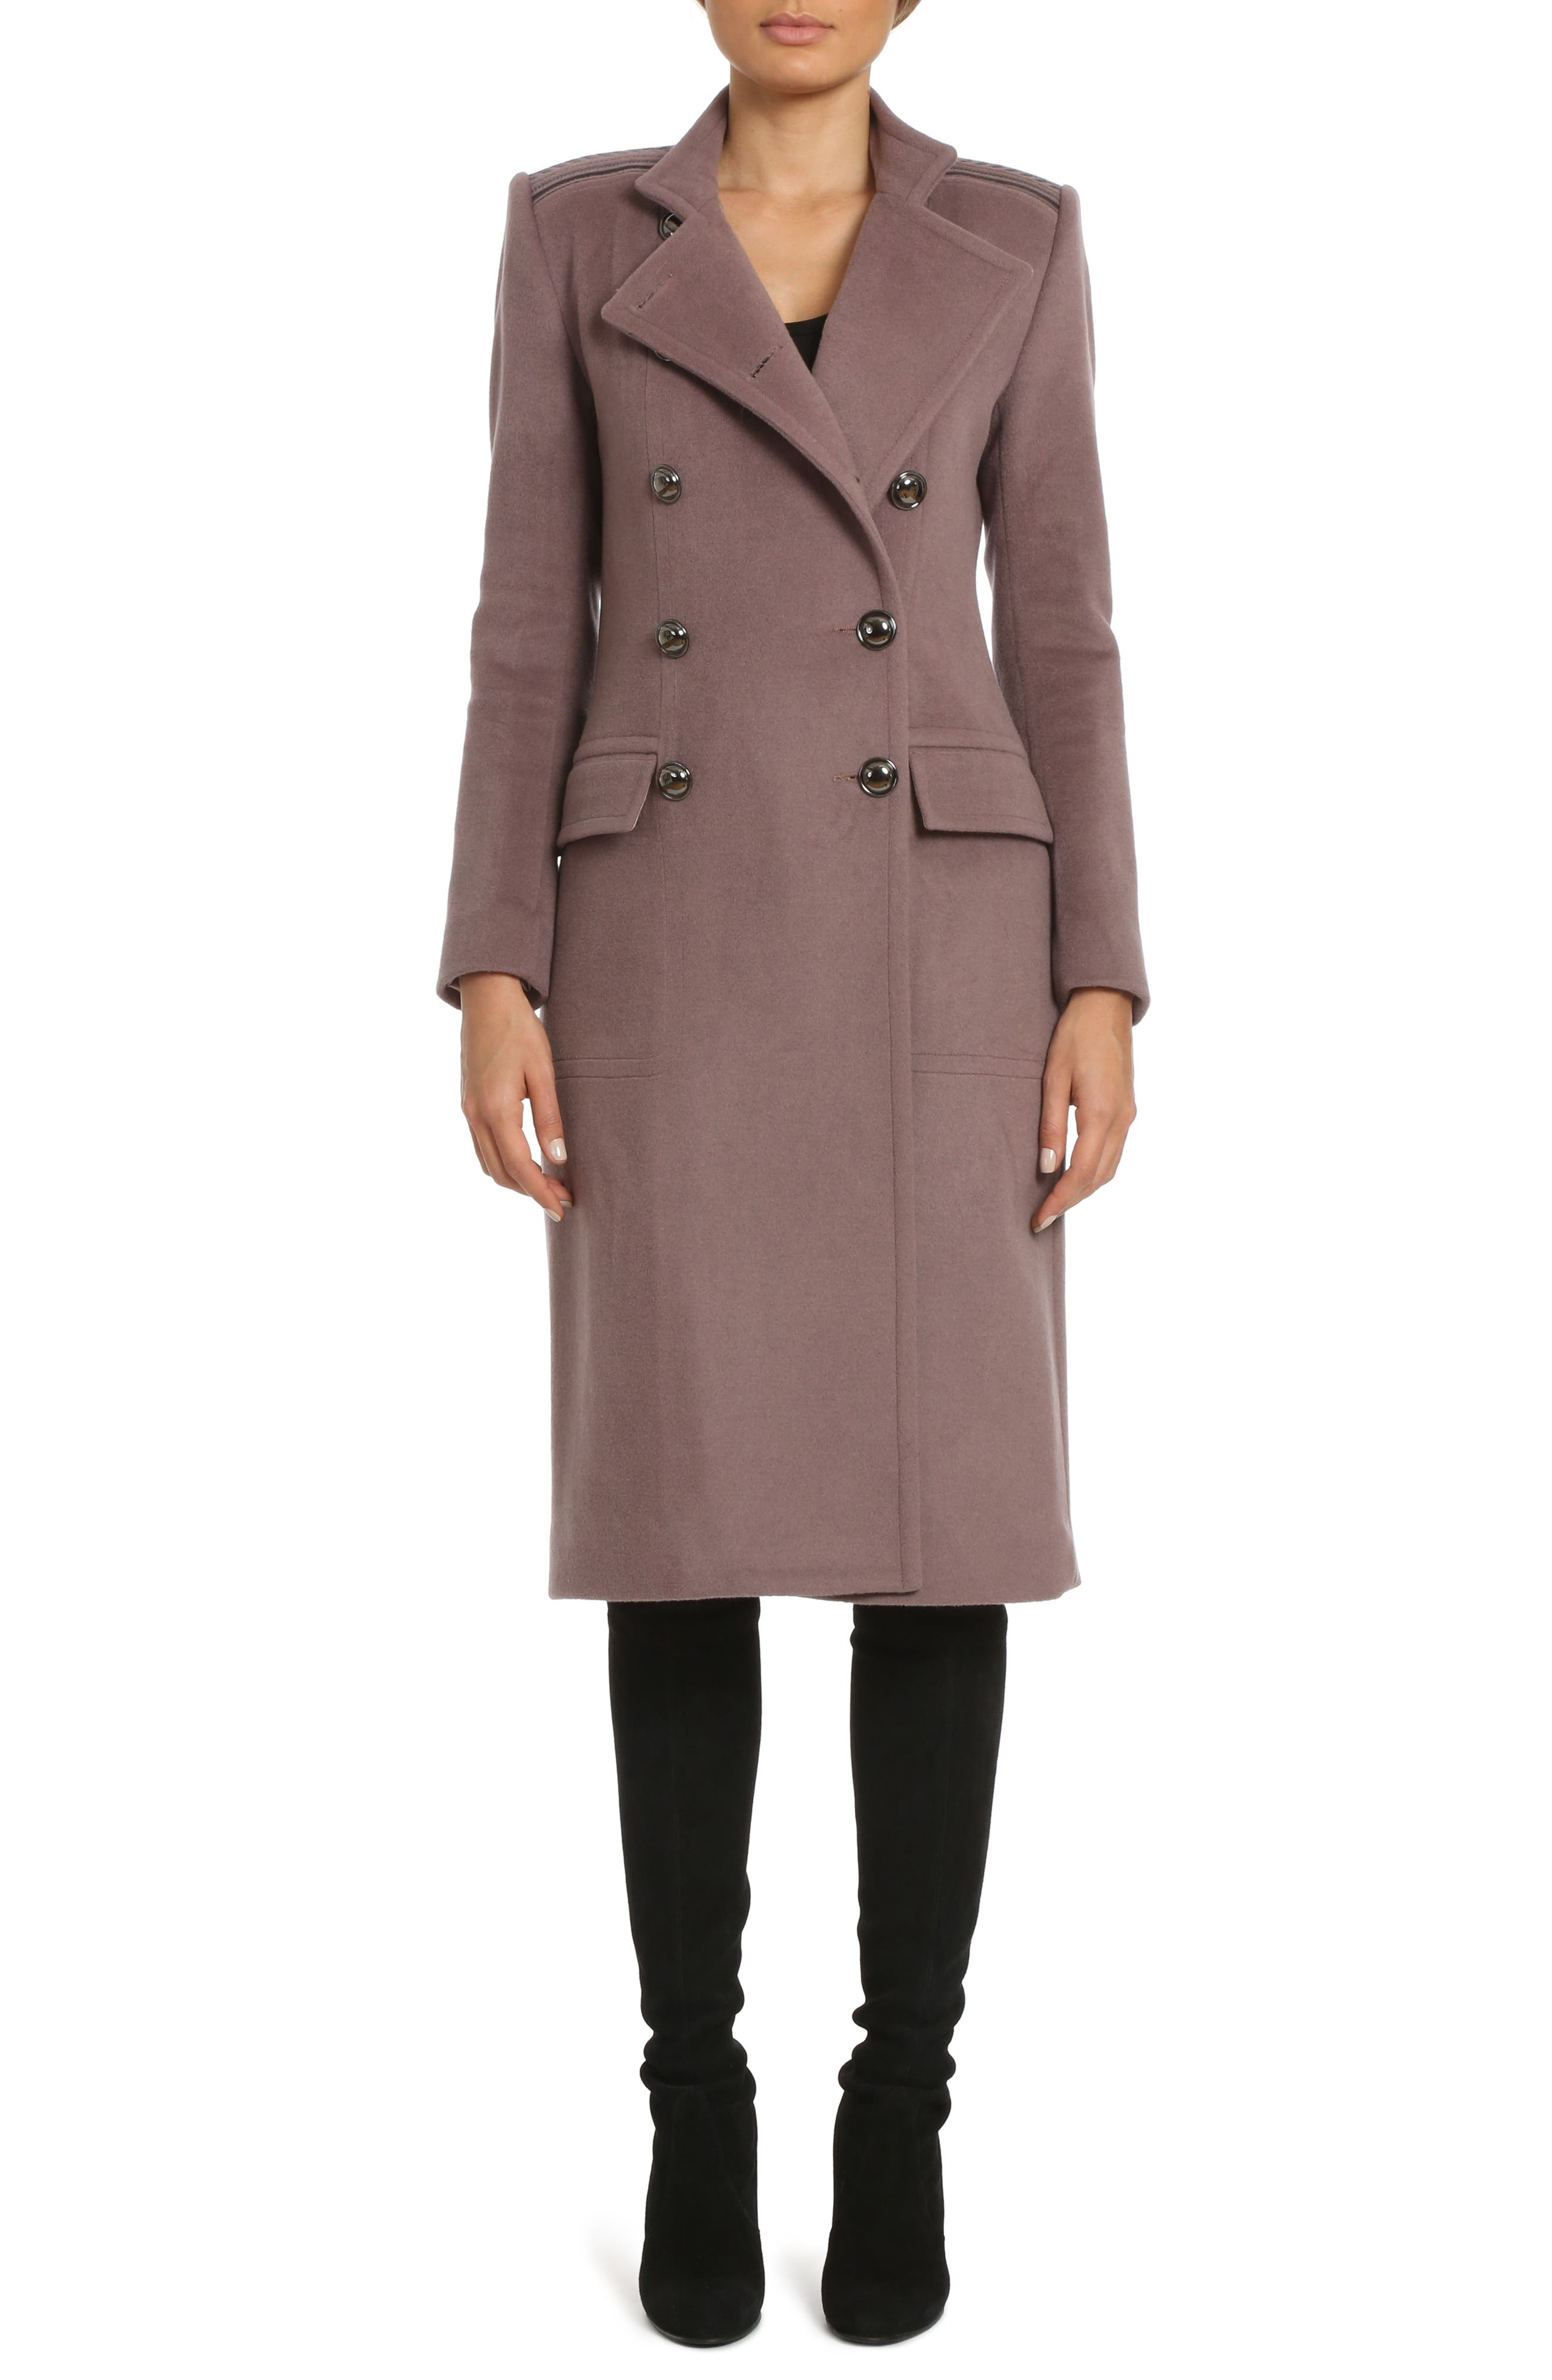 Badgley Mischka Trinity Embroidered Long Wool Blend Coat